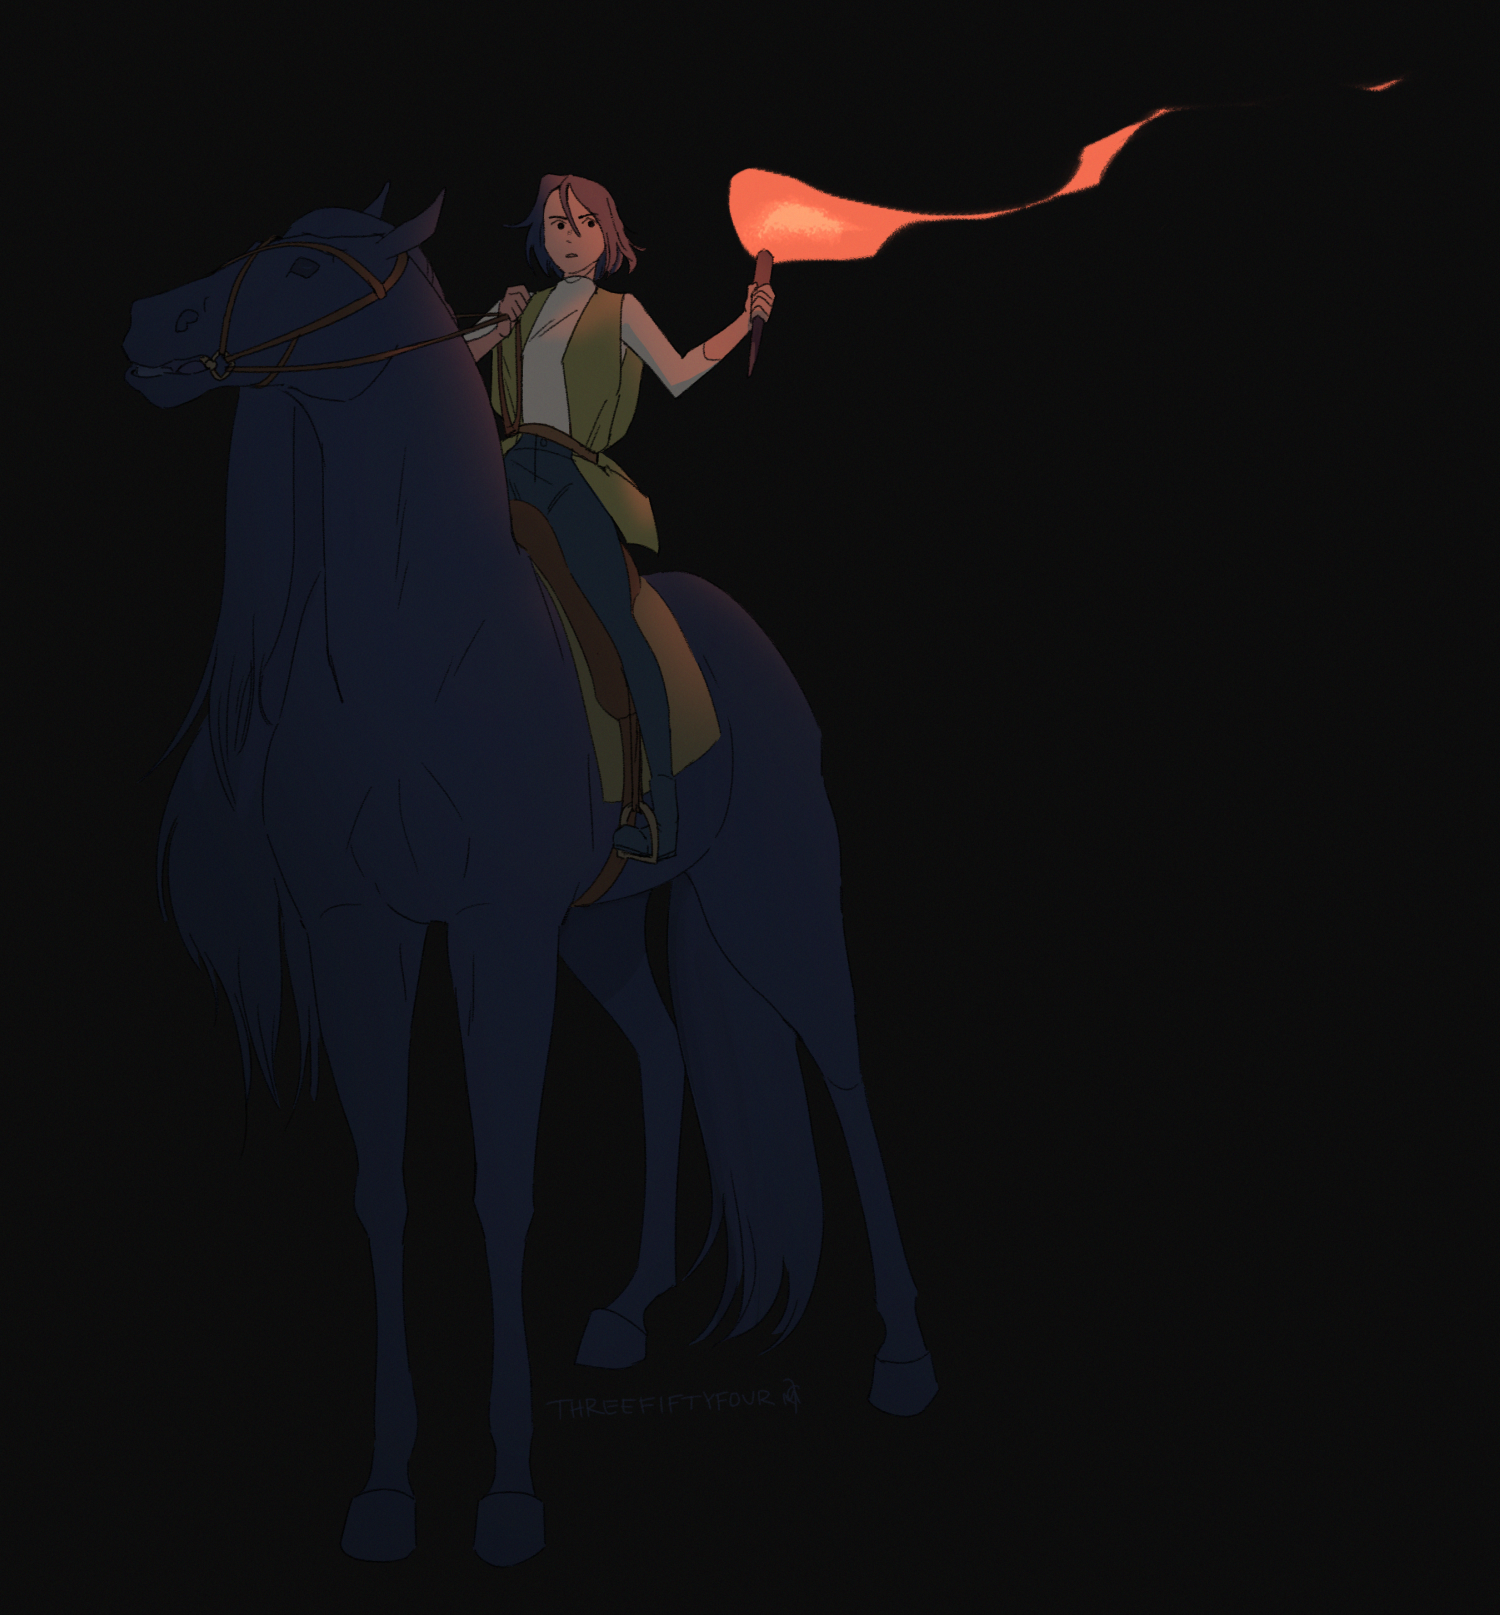 A person sitting atop of a horse with a torch in their hand.